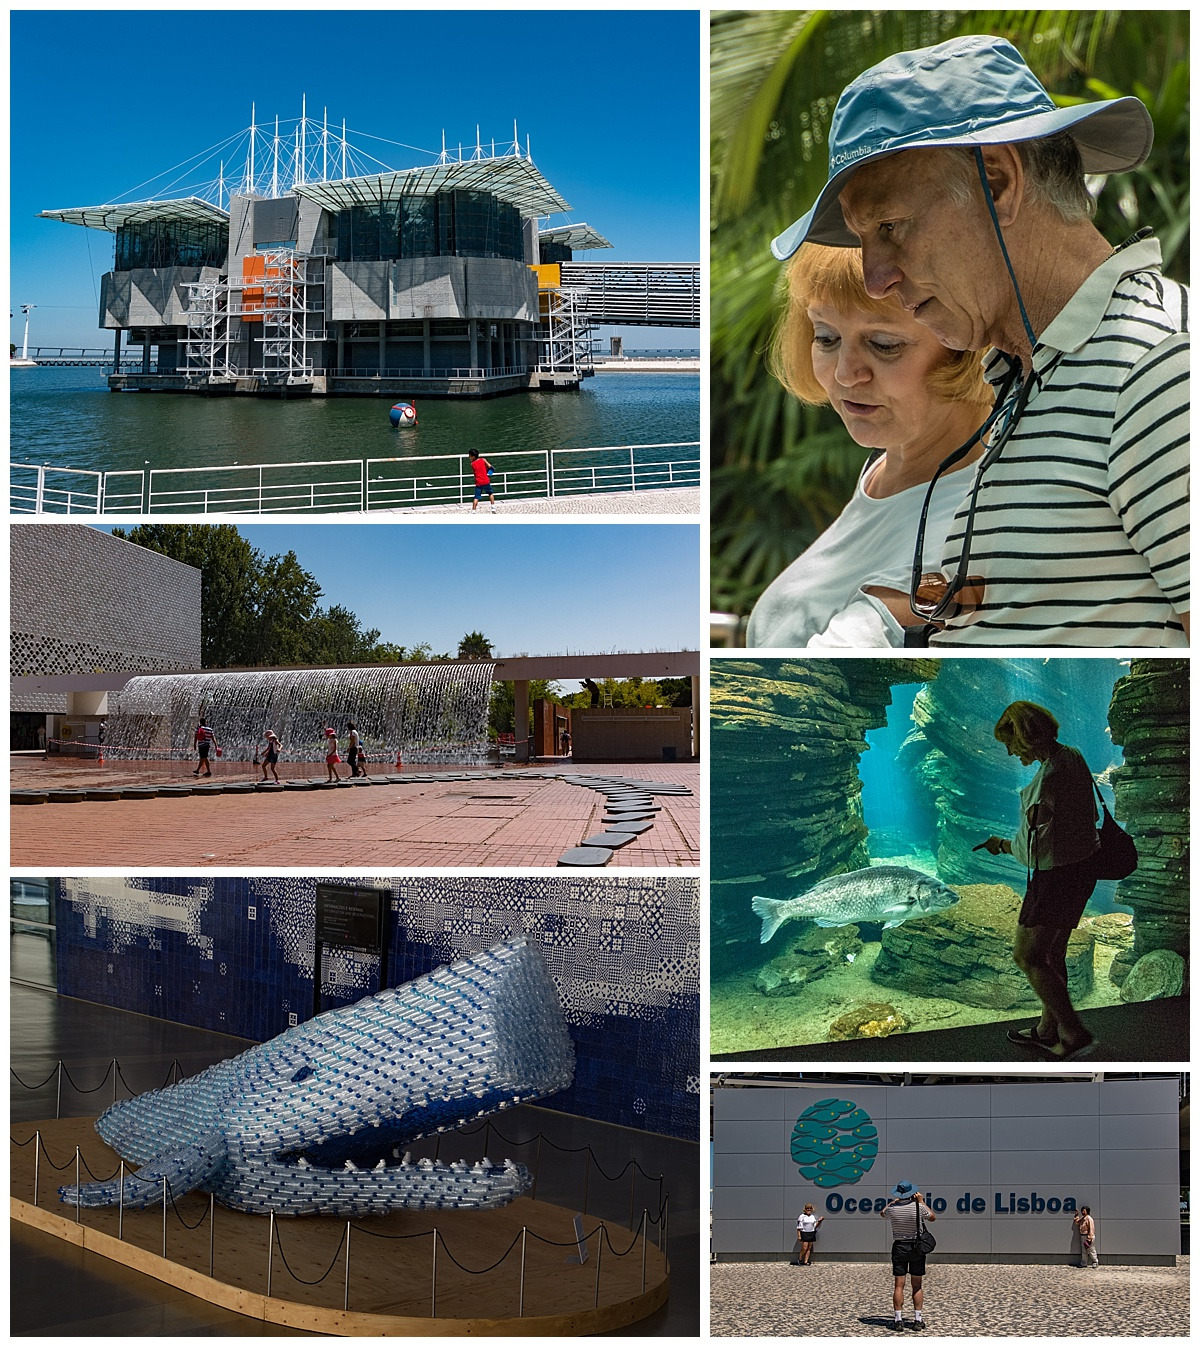 lisbon oceanarium 1- building and friends